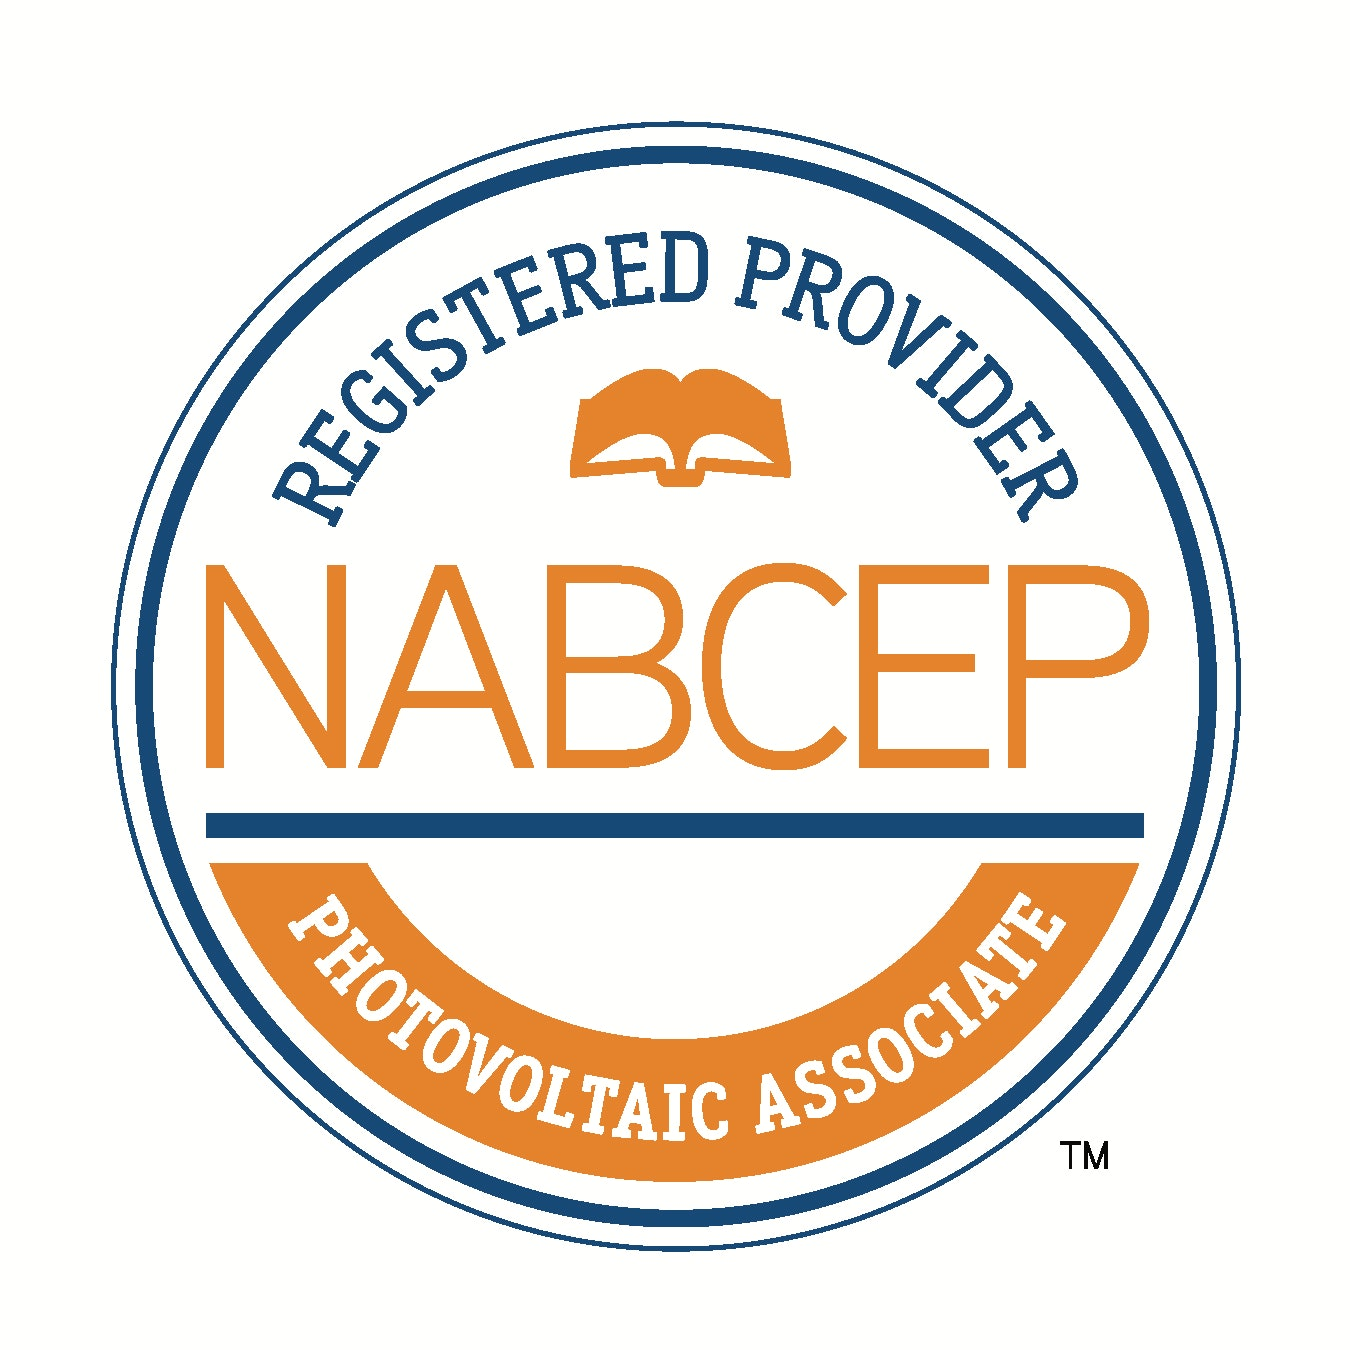 Nabcep registered provider photovoltaic associate.jpg?ixlib=rb 1.1